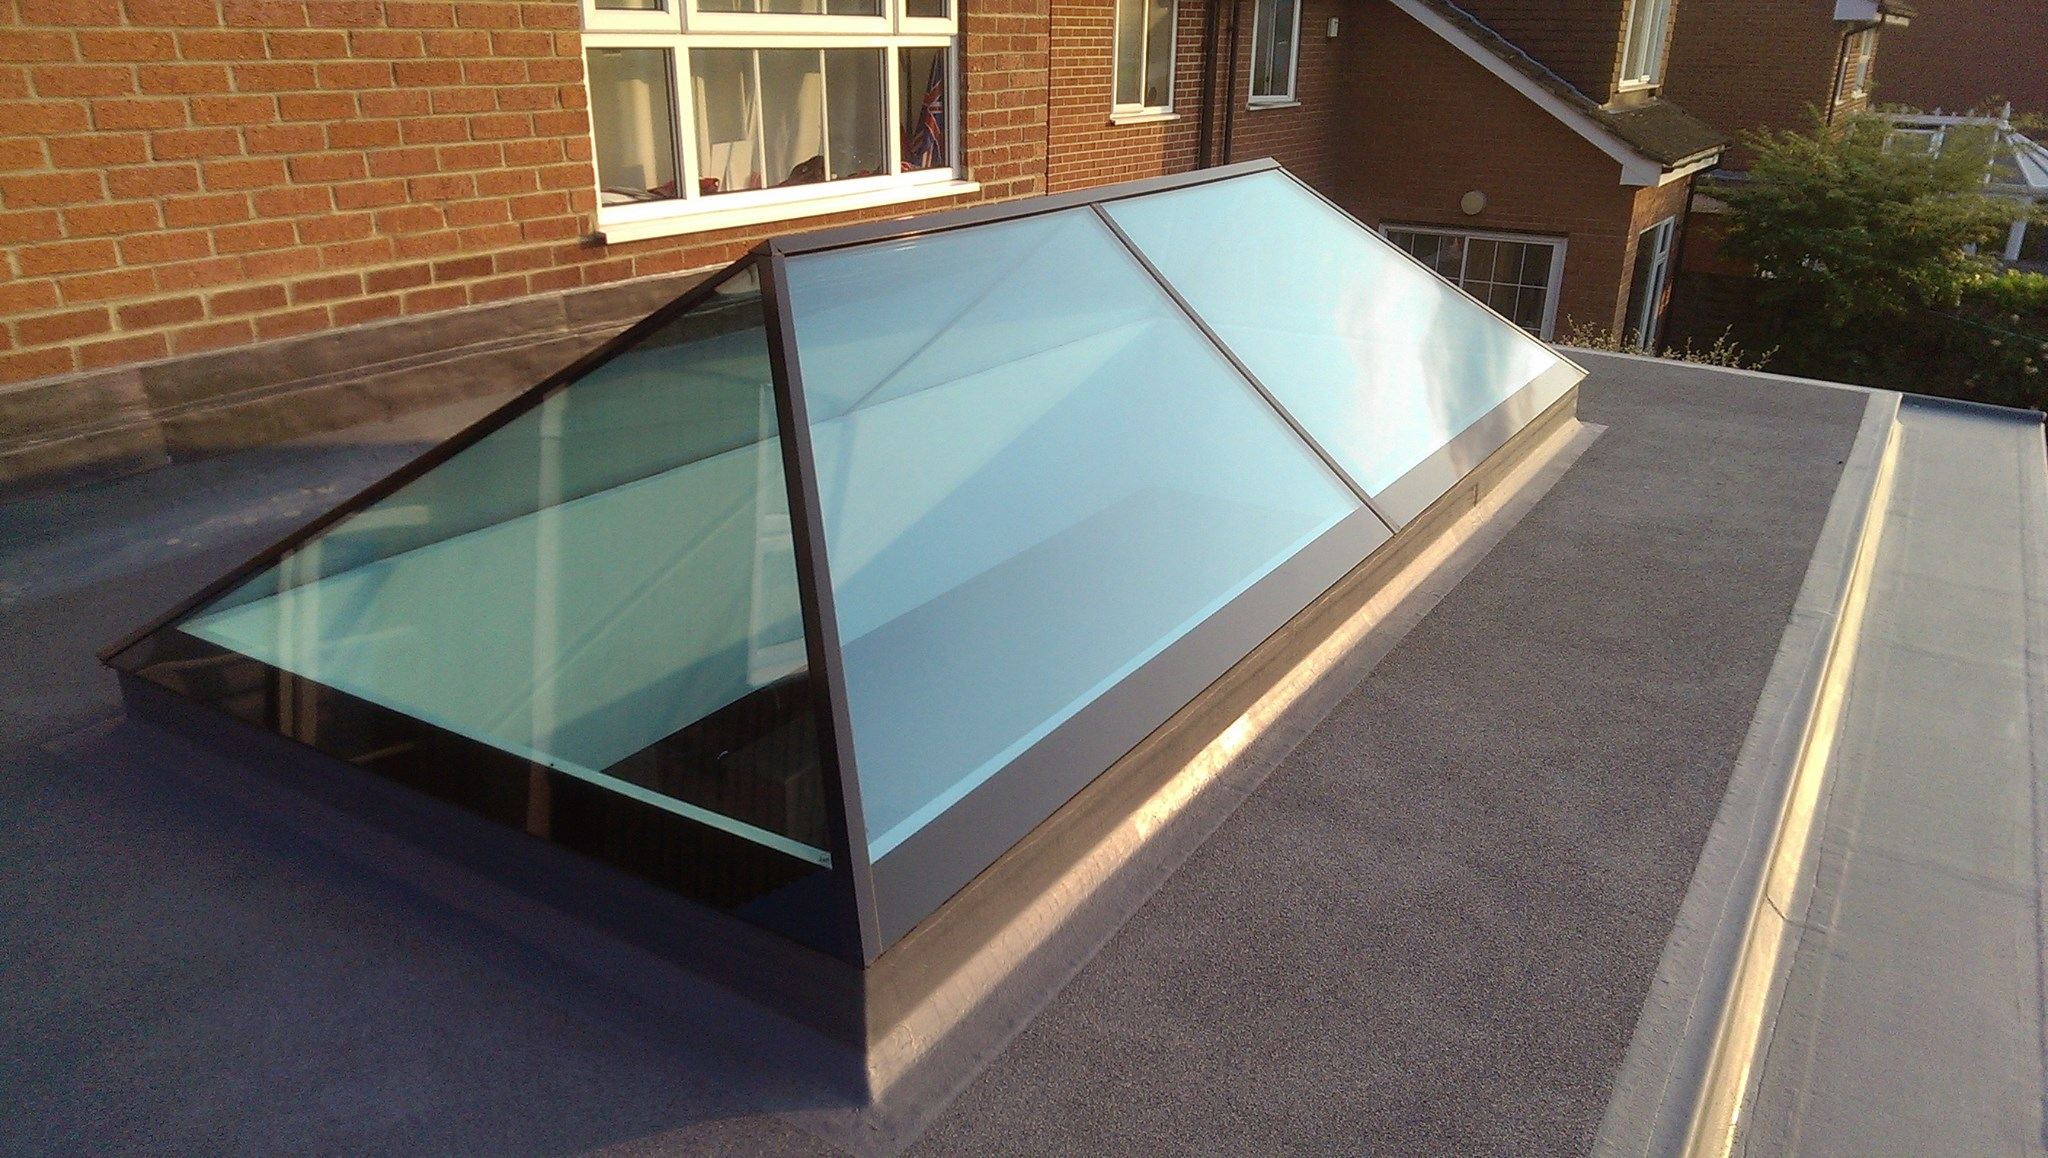 Aston windows systems limited for Large skylights